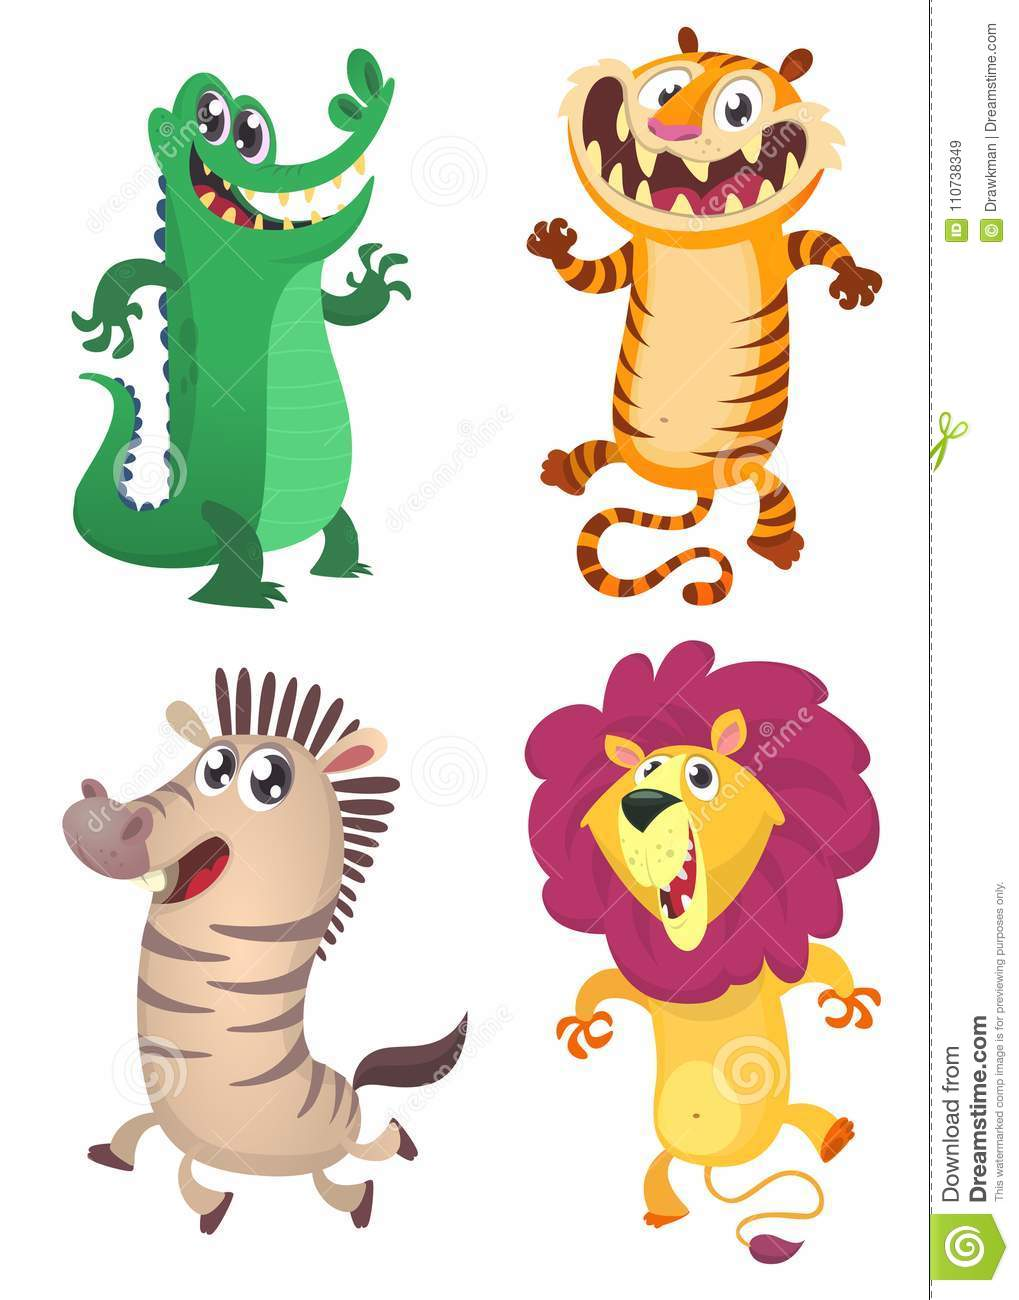 Fumetto Forest Animals Set Vector l illustrazione del coccodrillo, la tigre, la zebra, leone